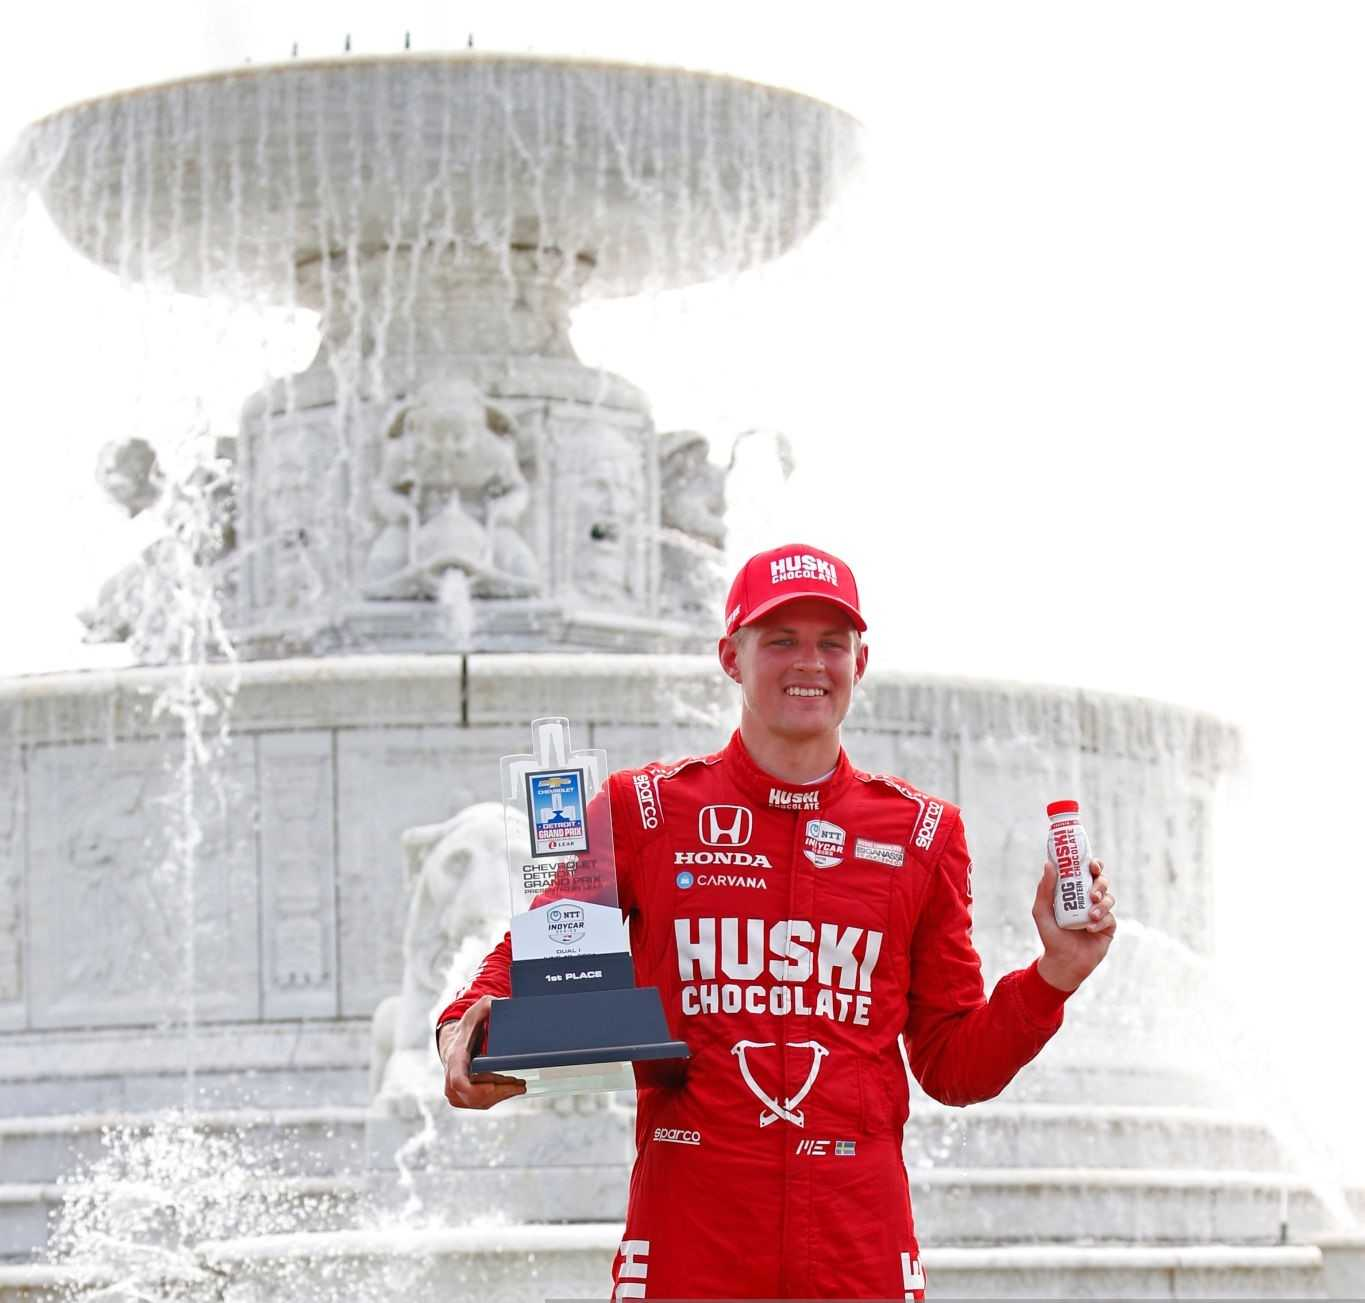 Marcus Ericsson won his first race in Detroit